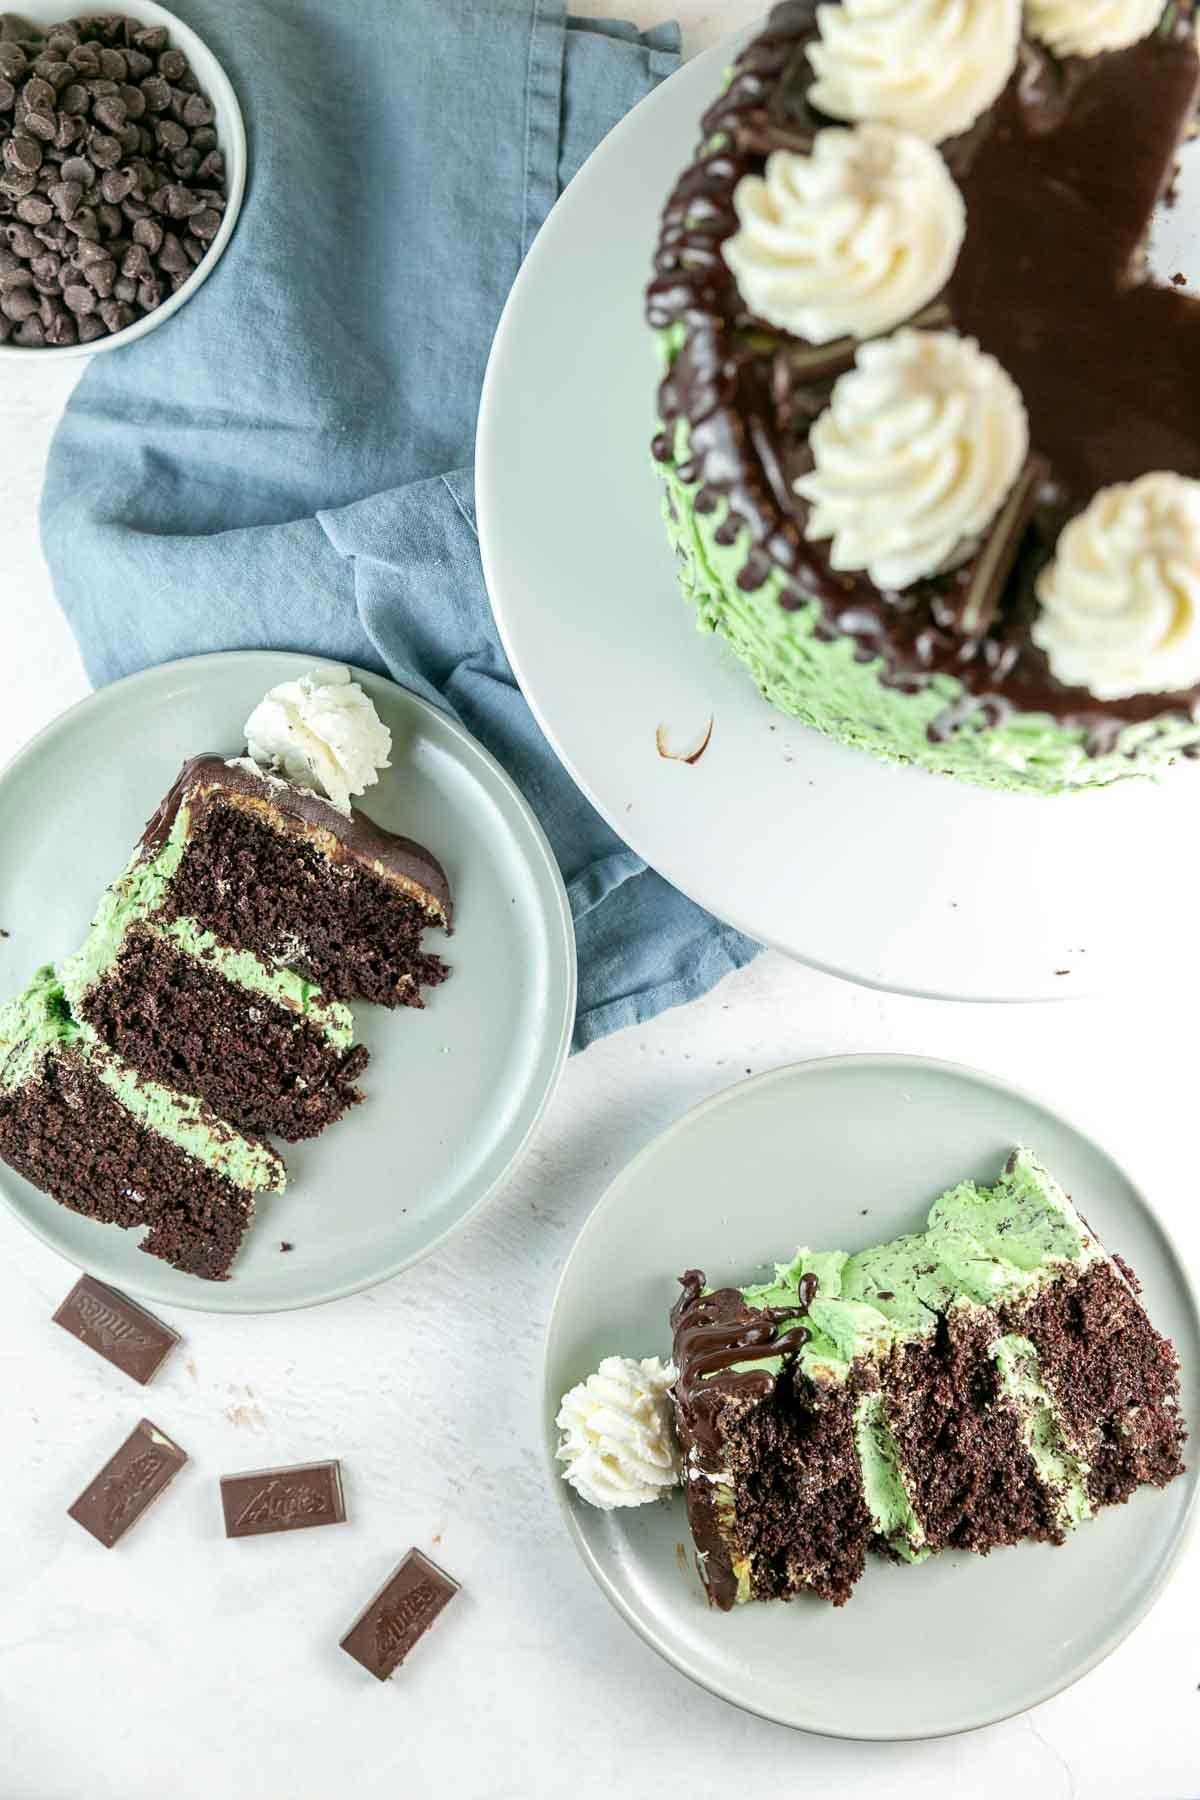 overhead view of two slices of cake on dessert plates with Andes mints scattered in the background